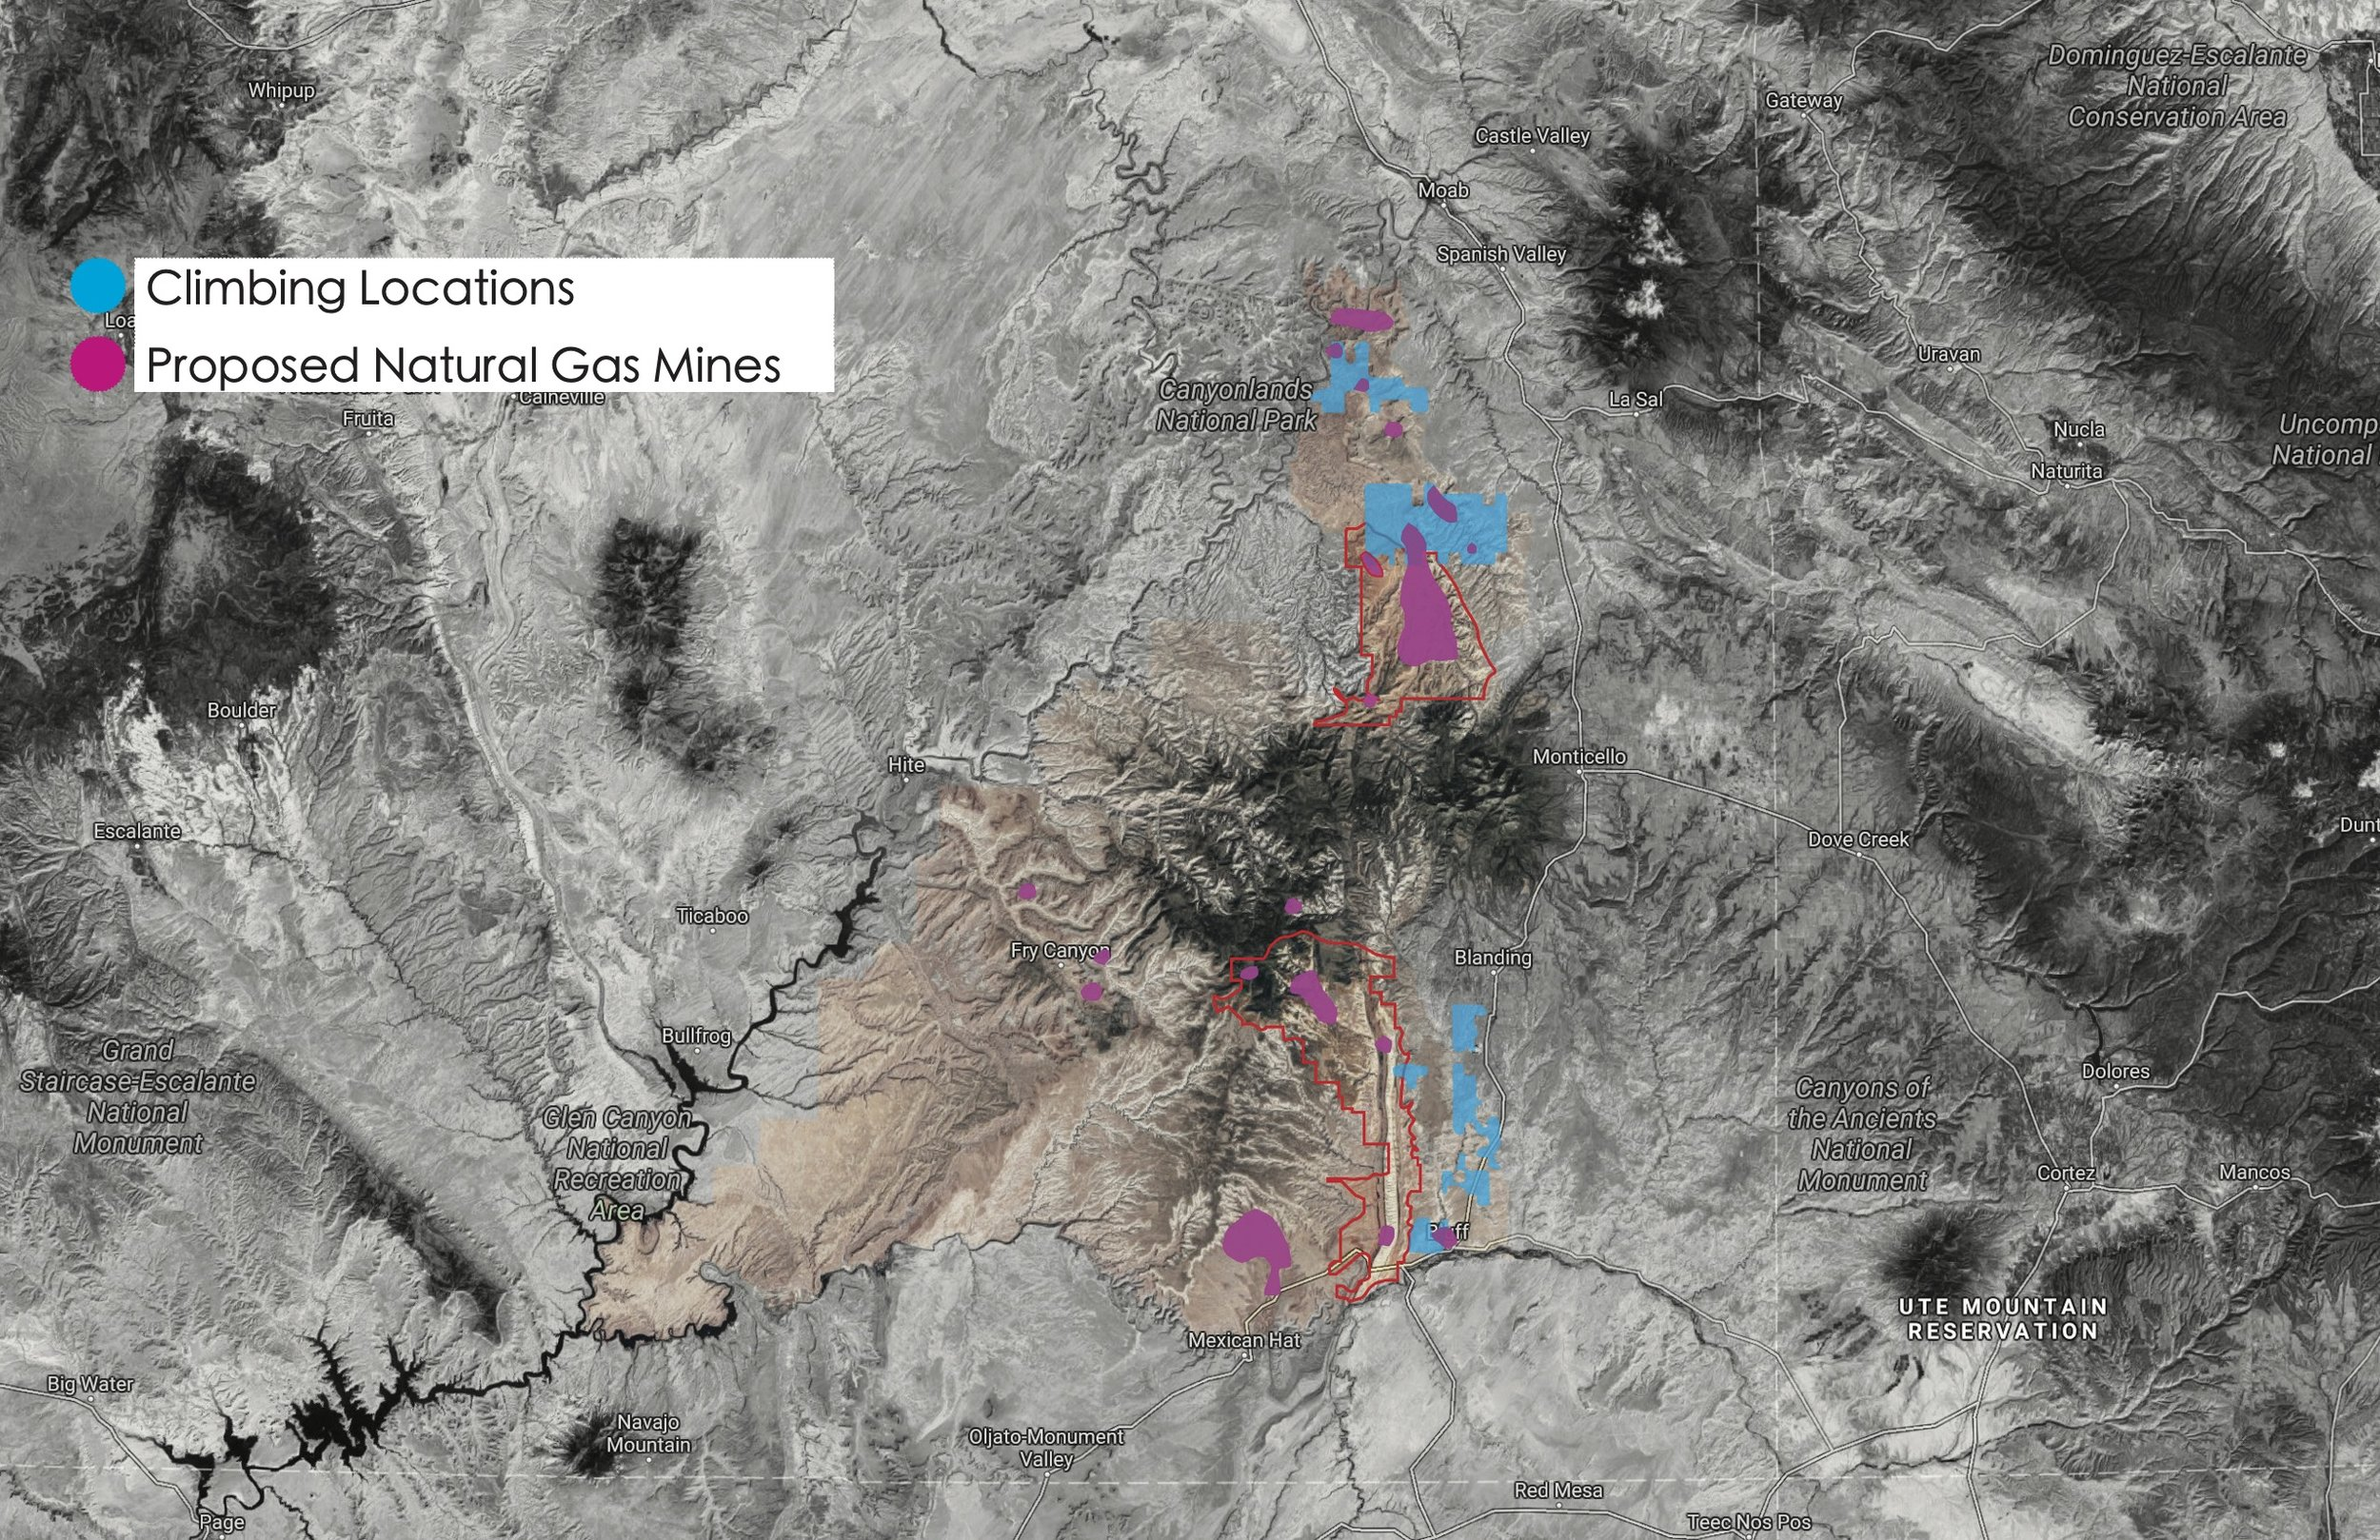 There is a large overlap between the popular climbing areas, like Indian Creek, and proposed mining operations.